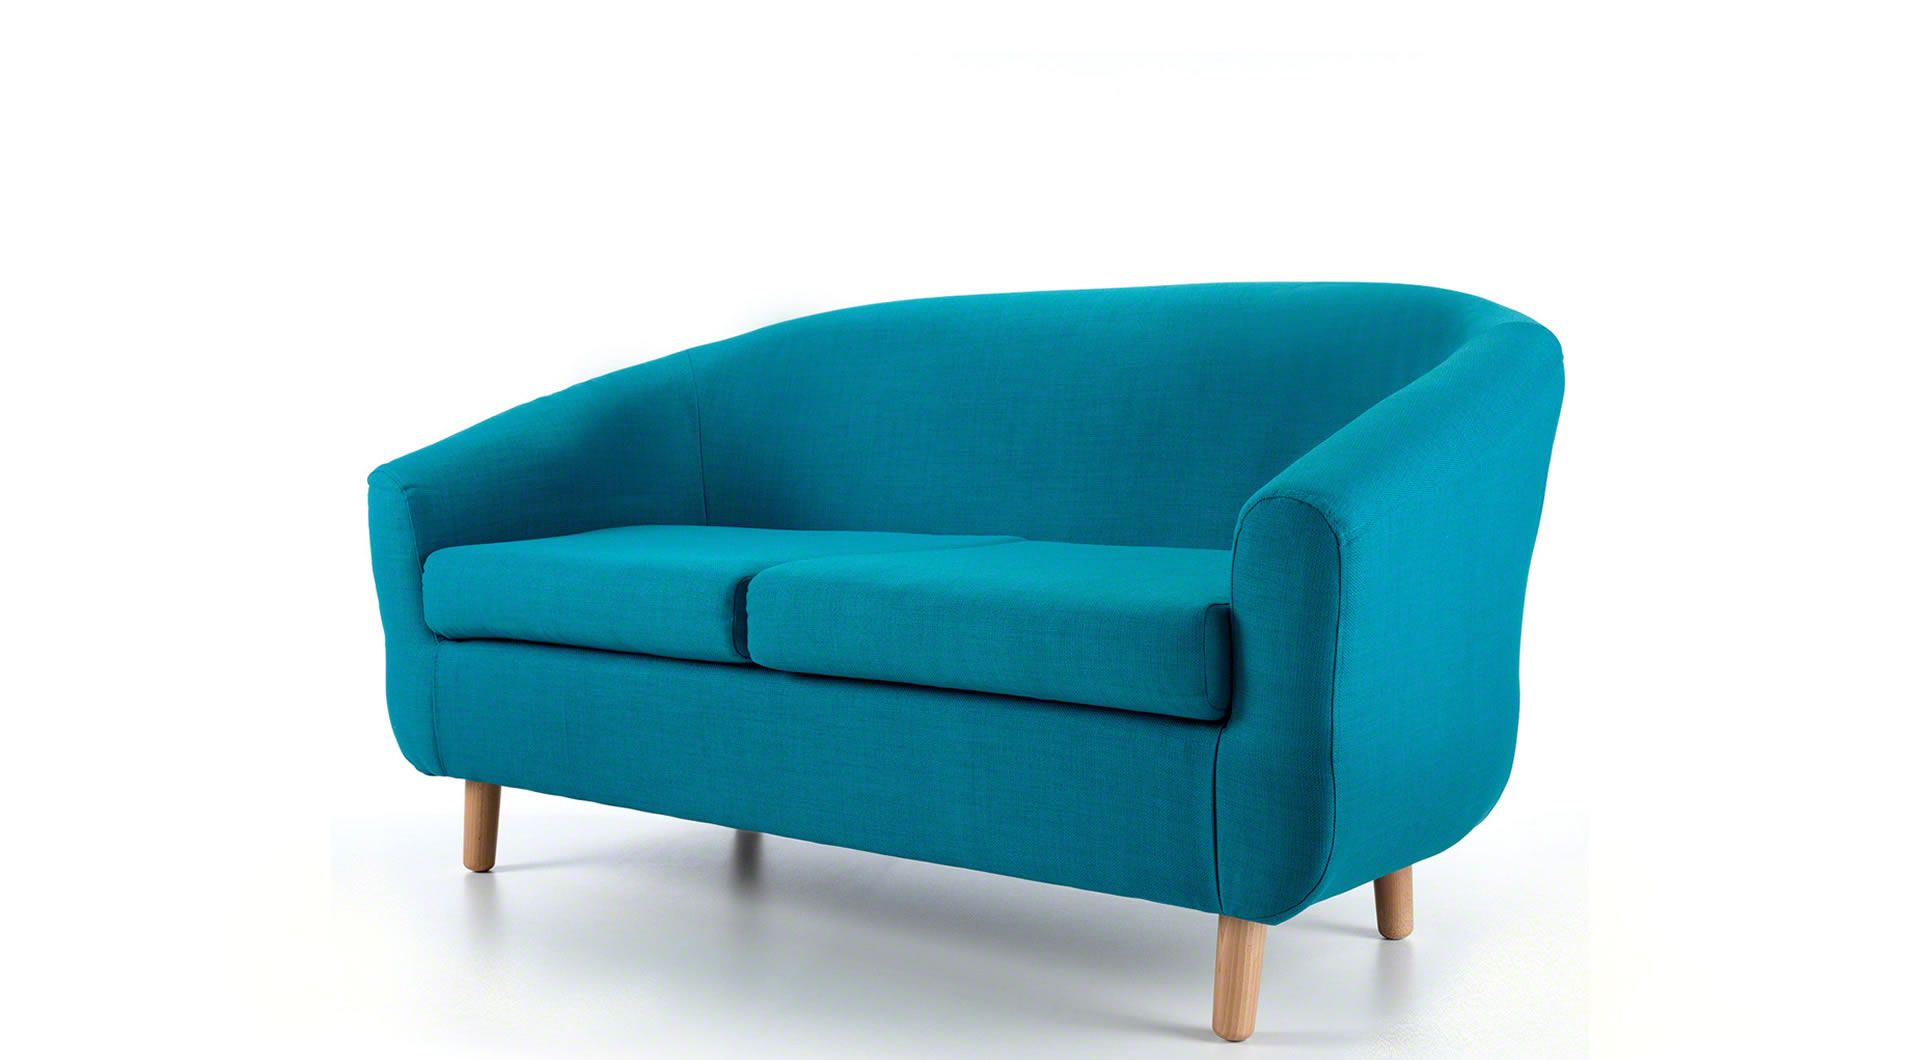 Swell Bombay 2 Seater Tub Sofa Teal Furniture Teal Sofa Bralicious Painted Fabric Chair Ideas Braliciousco